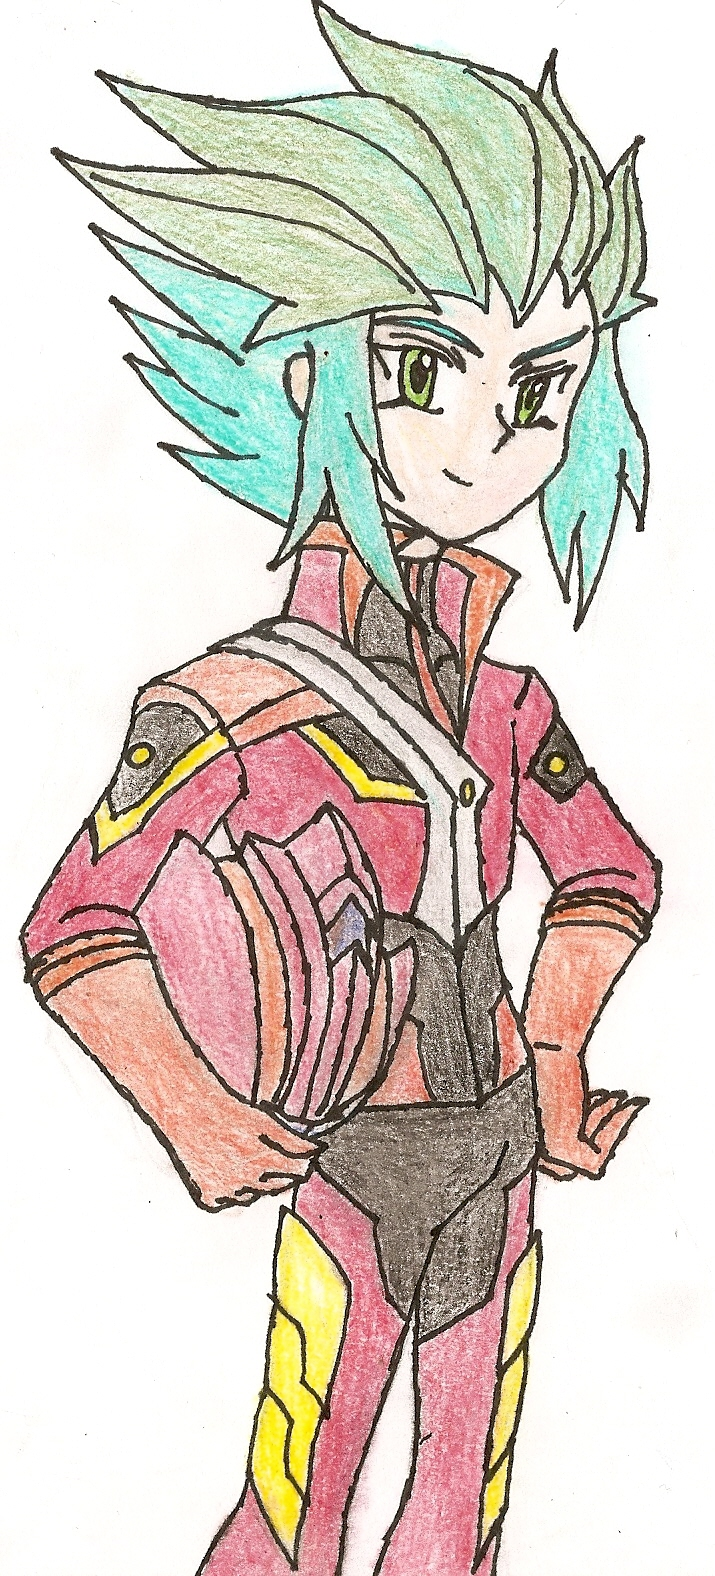 Arc-V OC: The Duelist of Passion by NeonNeoz